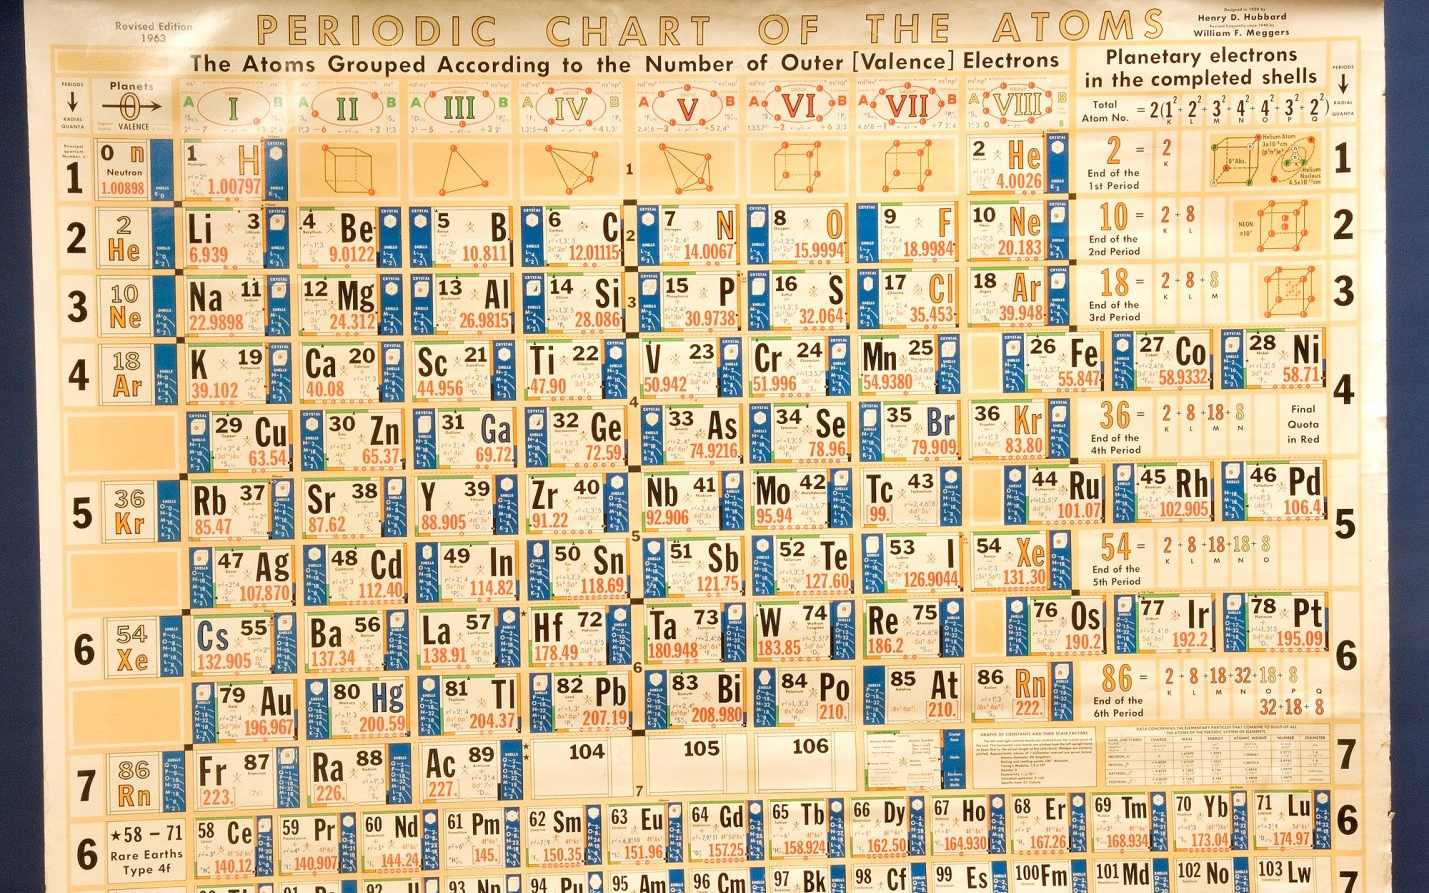 The periodic table its elementary nist hubbard meggers periodic chart of the atomsg urtaz Gallery